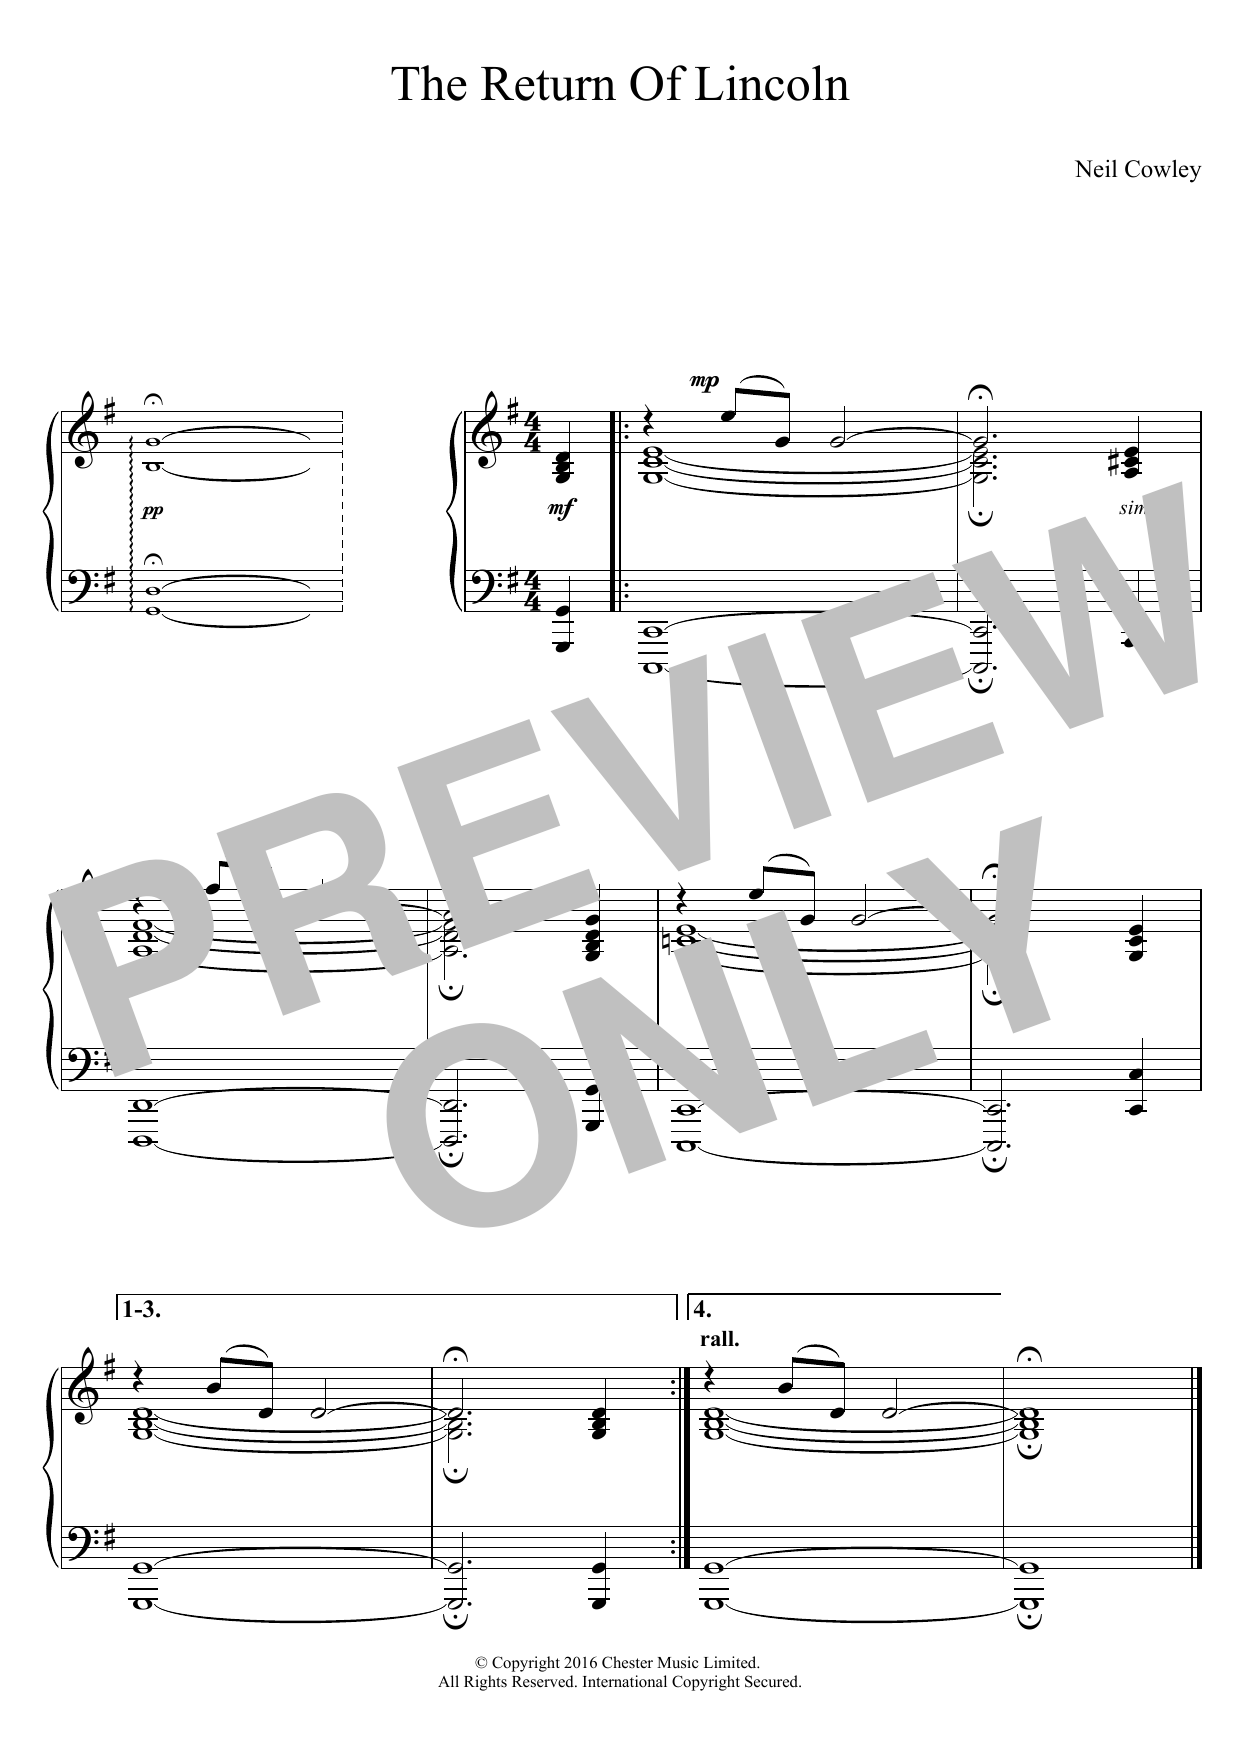 The Return Of Lincoln Sheet Music